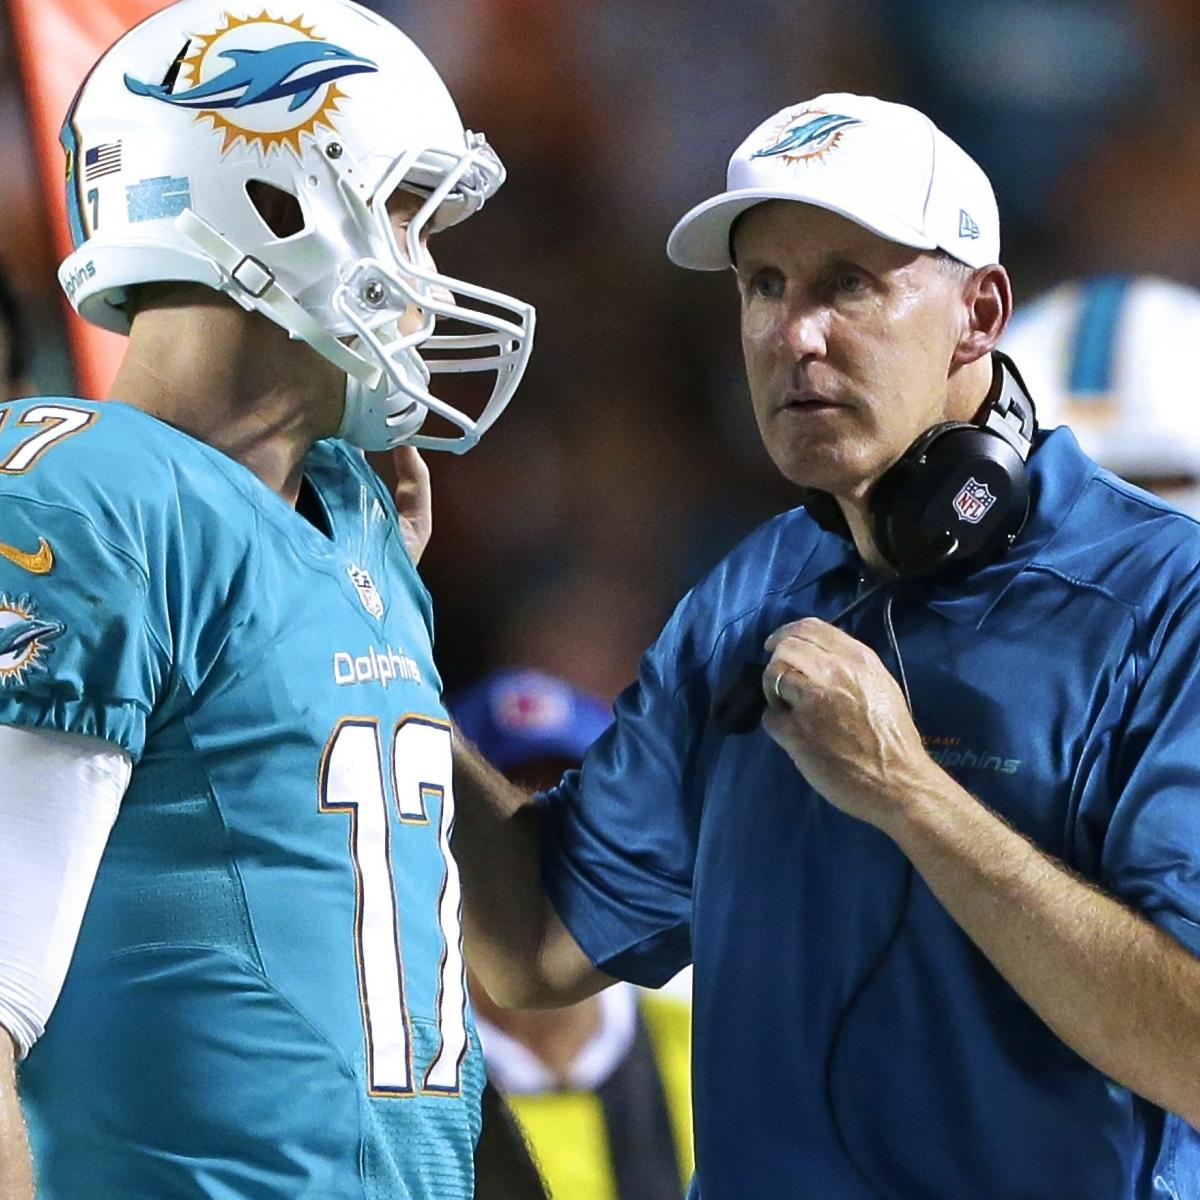 Latest News Updates: Ryan Tannehill Vs. Matt Moore: Latest Updates On Miami